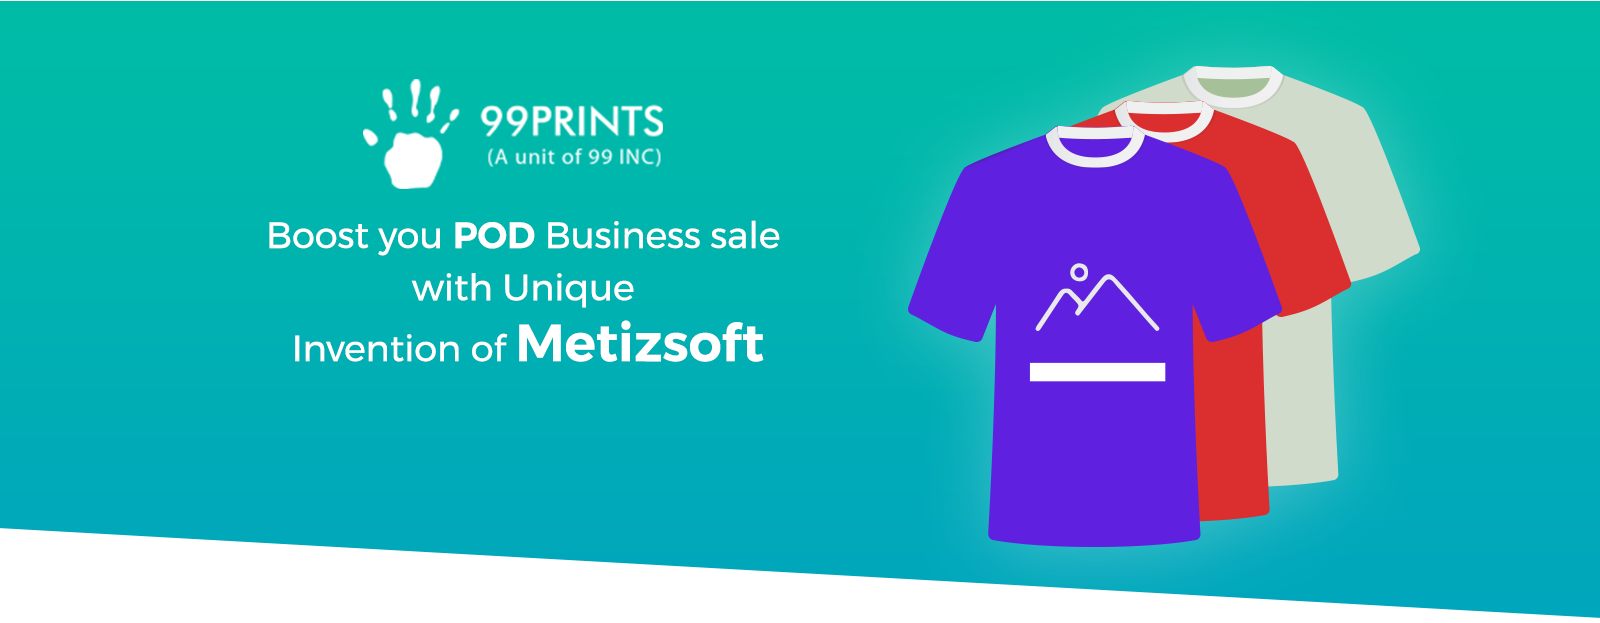 99Prints shopify apps by metizsoft